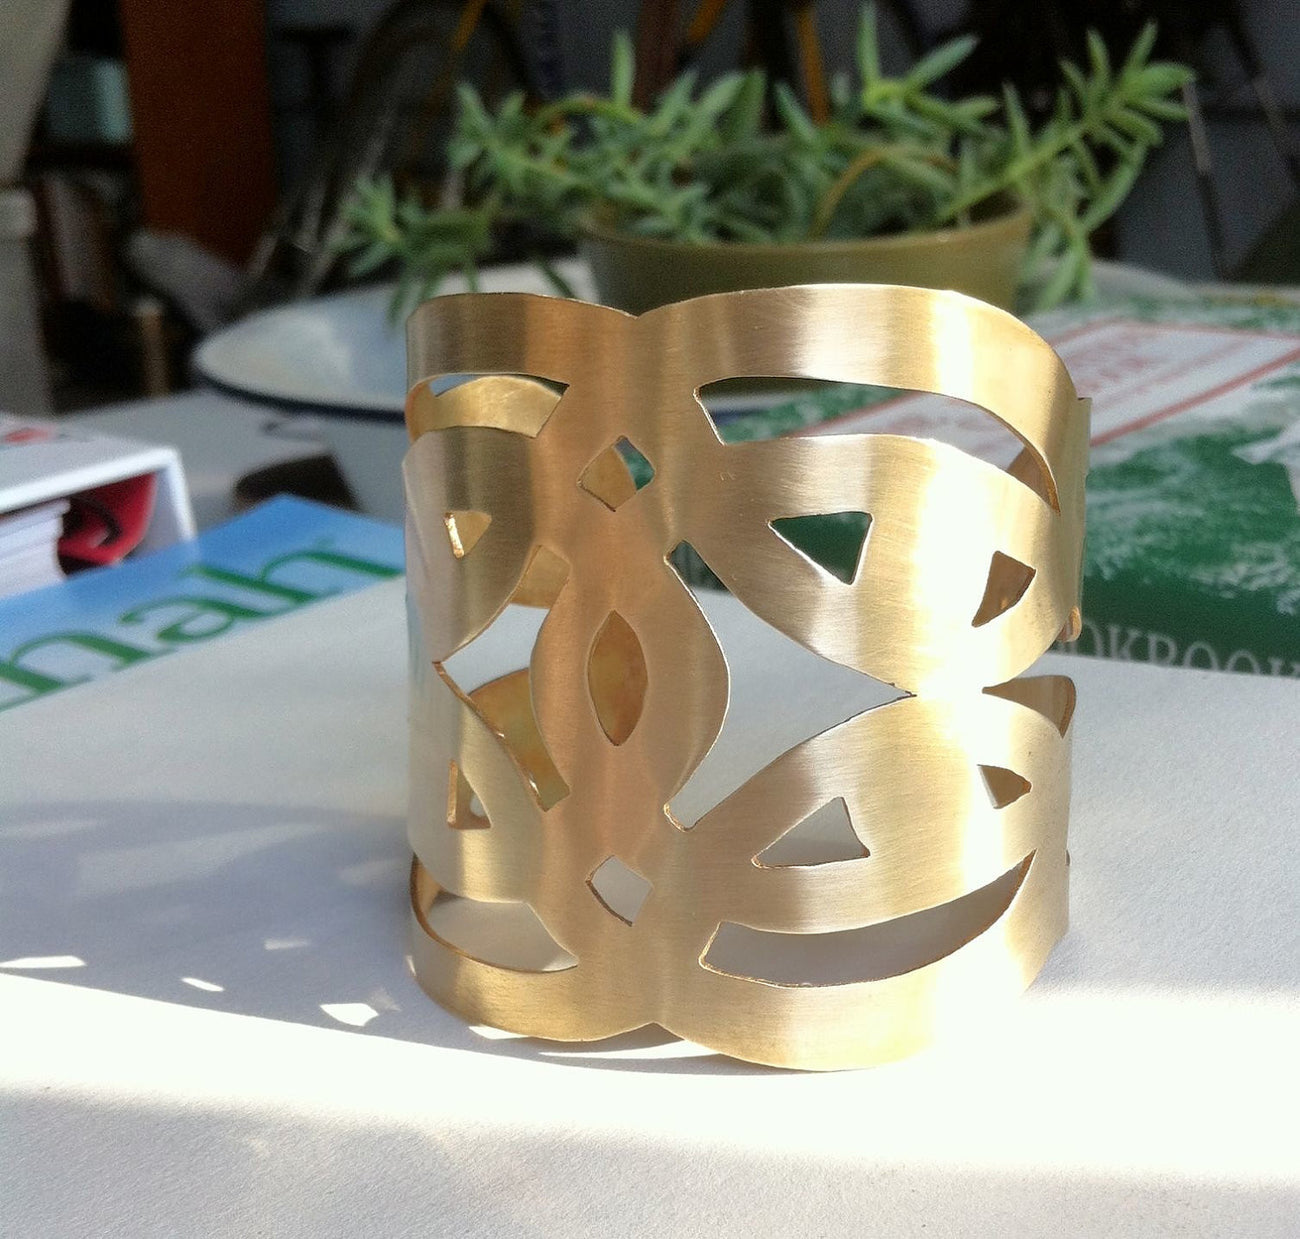 Large, Gold Colored Brass, Hand-Made Cut Out Cuff Bracelet - 0077 - Virginia Wynne Designs